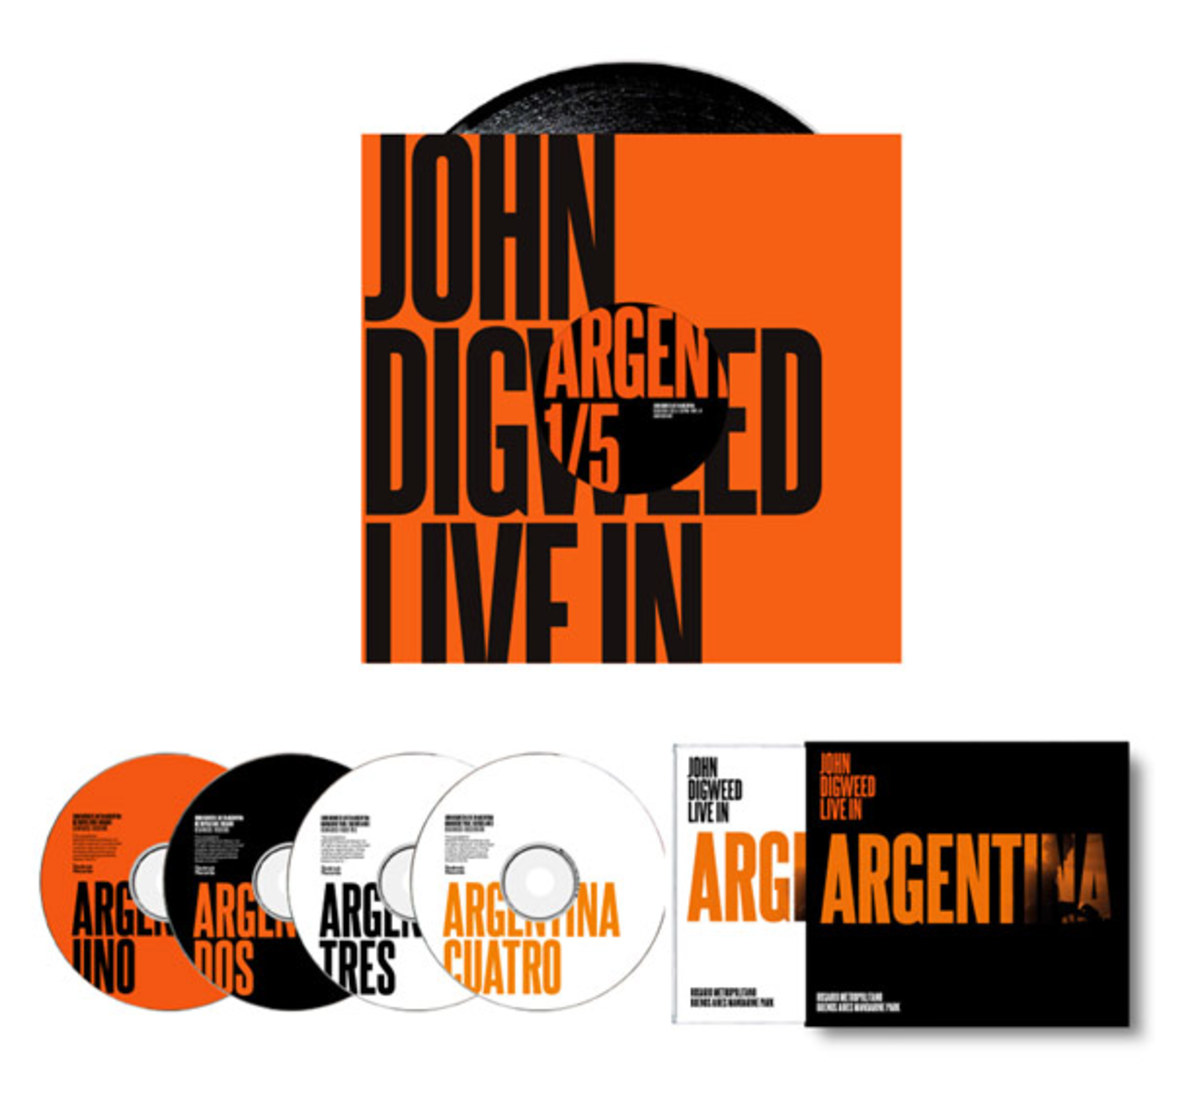 John Digweed Live in Argentina 4xCD/Bonus DVD - House Music